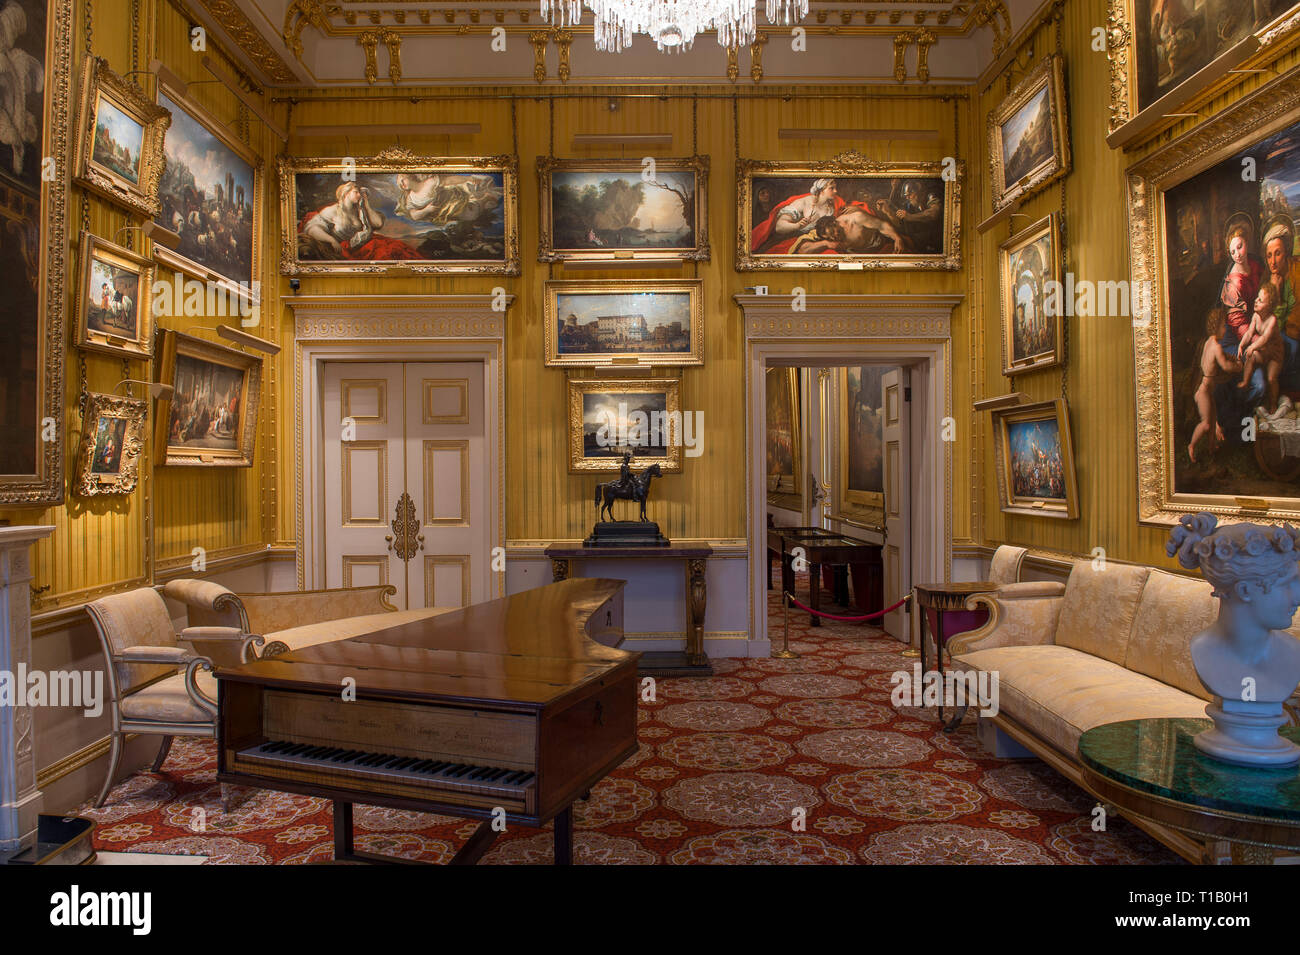 Apsley House, London, UK. 25 March, 2019. 'Young Wellington in India' exhibition explores the early years and provide insights into the man known globally as the 1st Duke of Wellington, who later defeated Napoleon Bonaparte at Waterloo in 1815. The exhibition runs from 30 March - 3 November 2019. Credit: Malcolm Park/Alamy Live News. - Stock Image